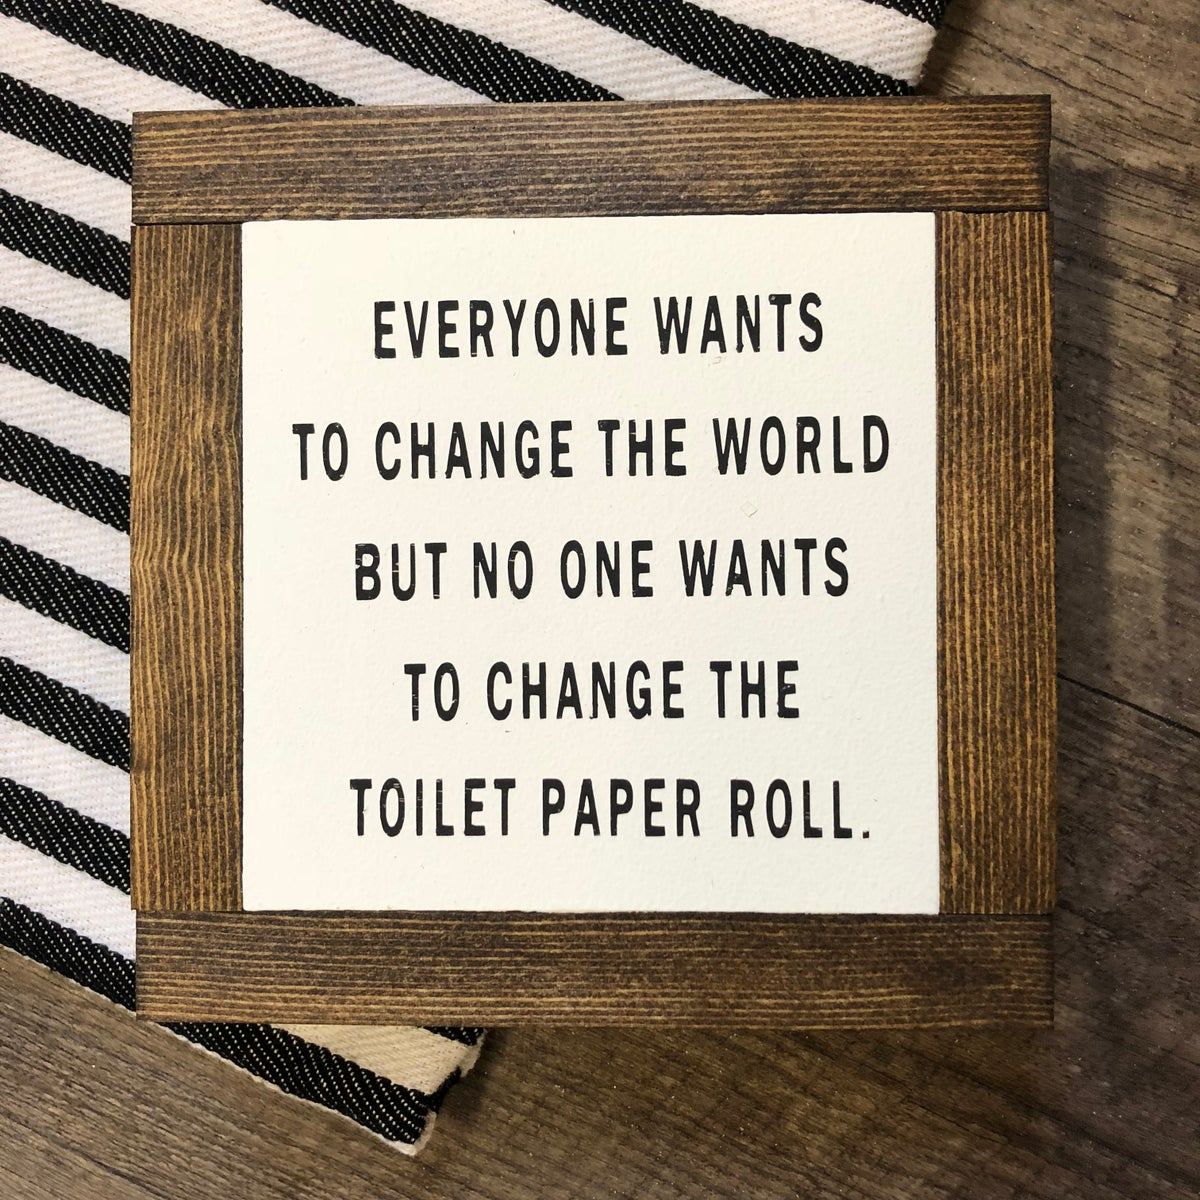 Image of Toilet paper roll